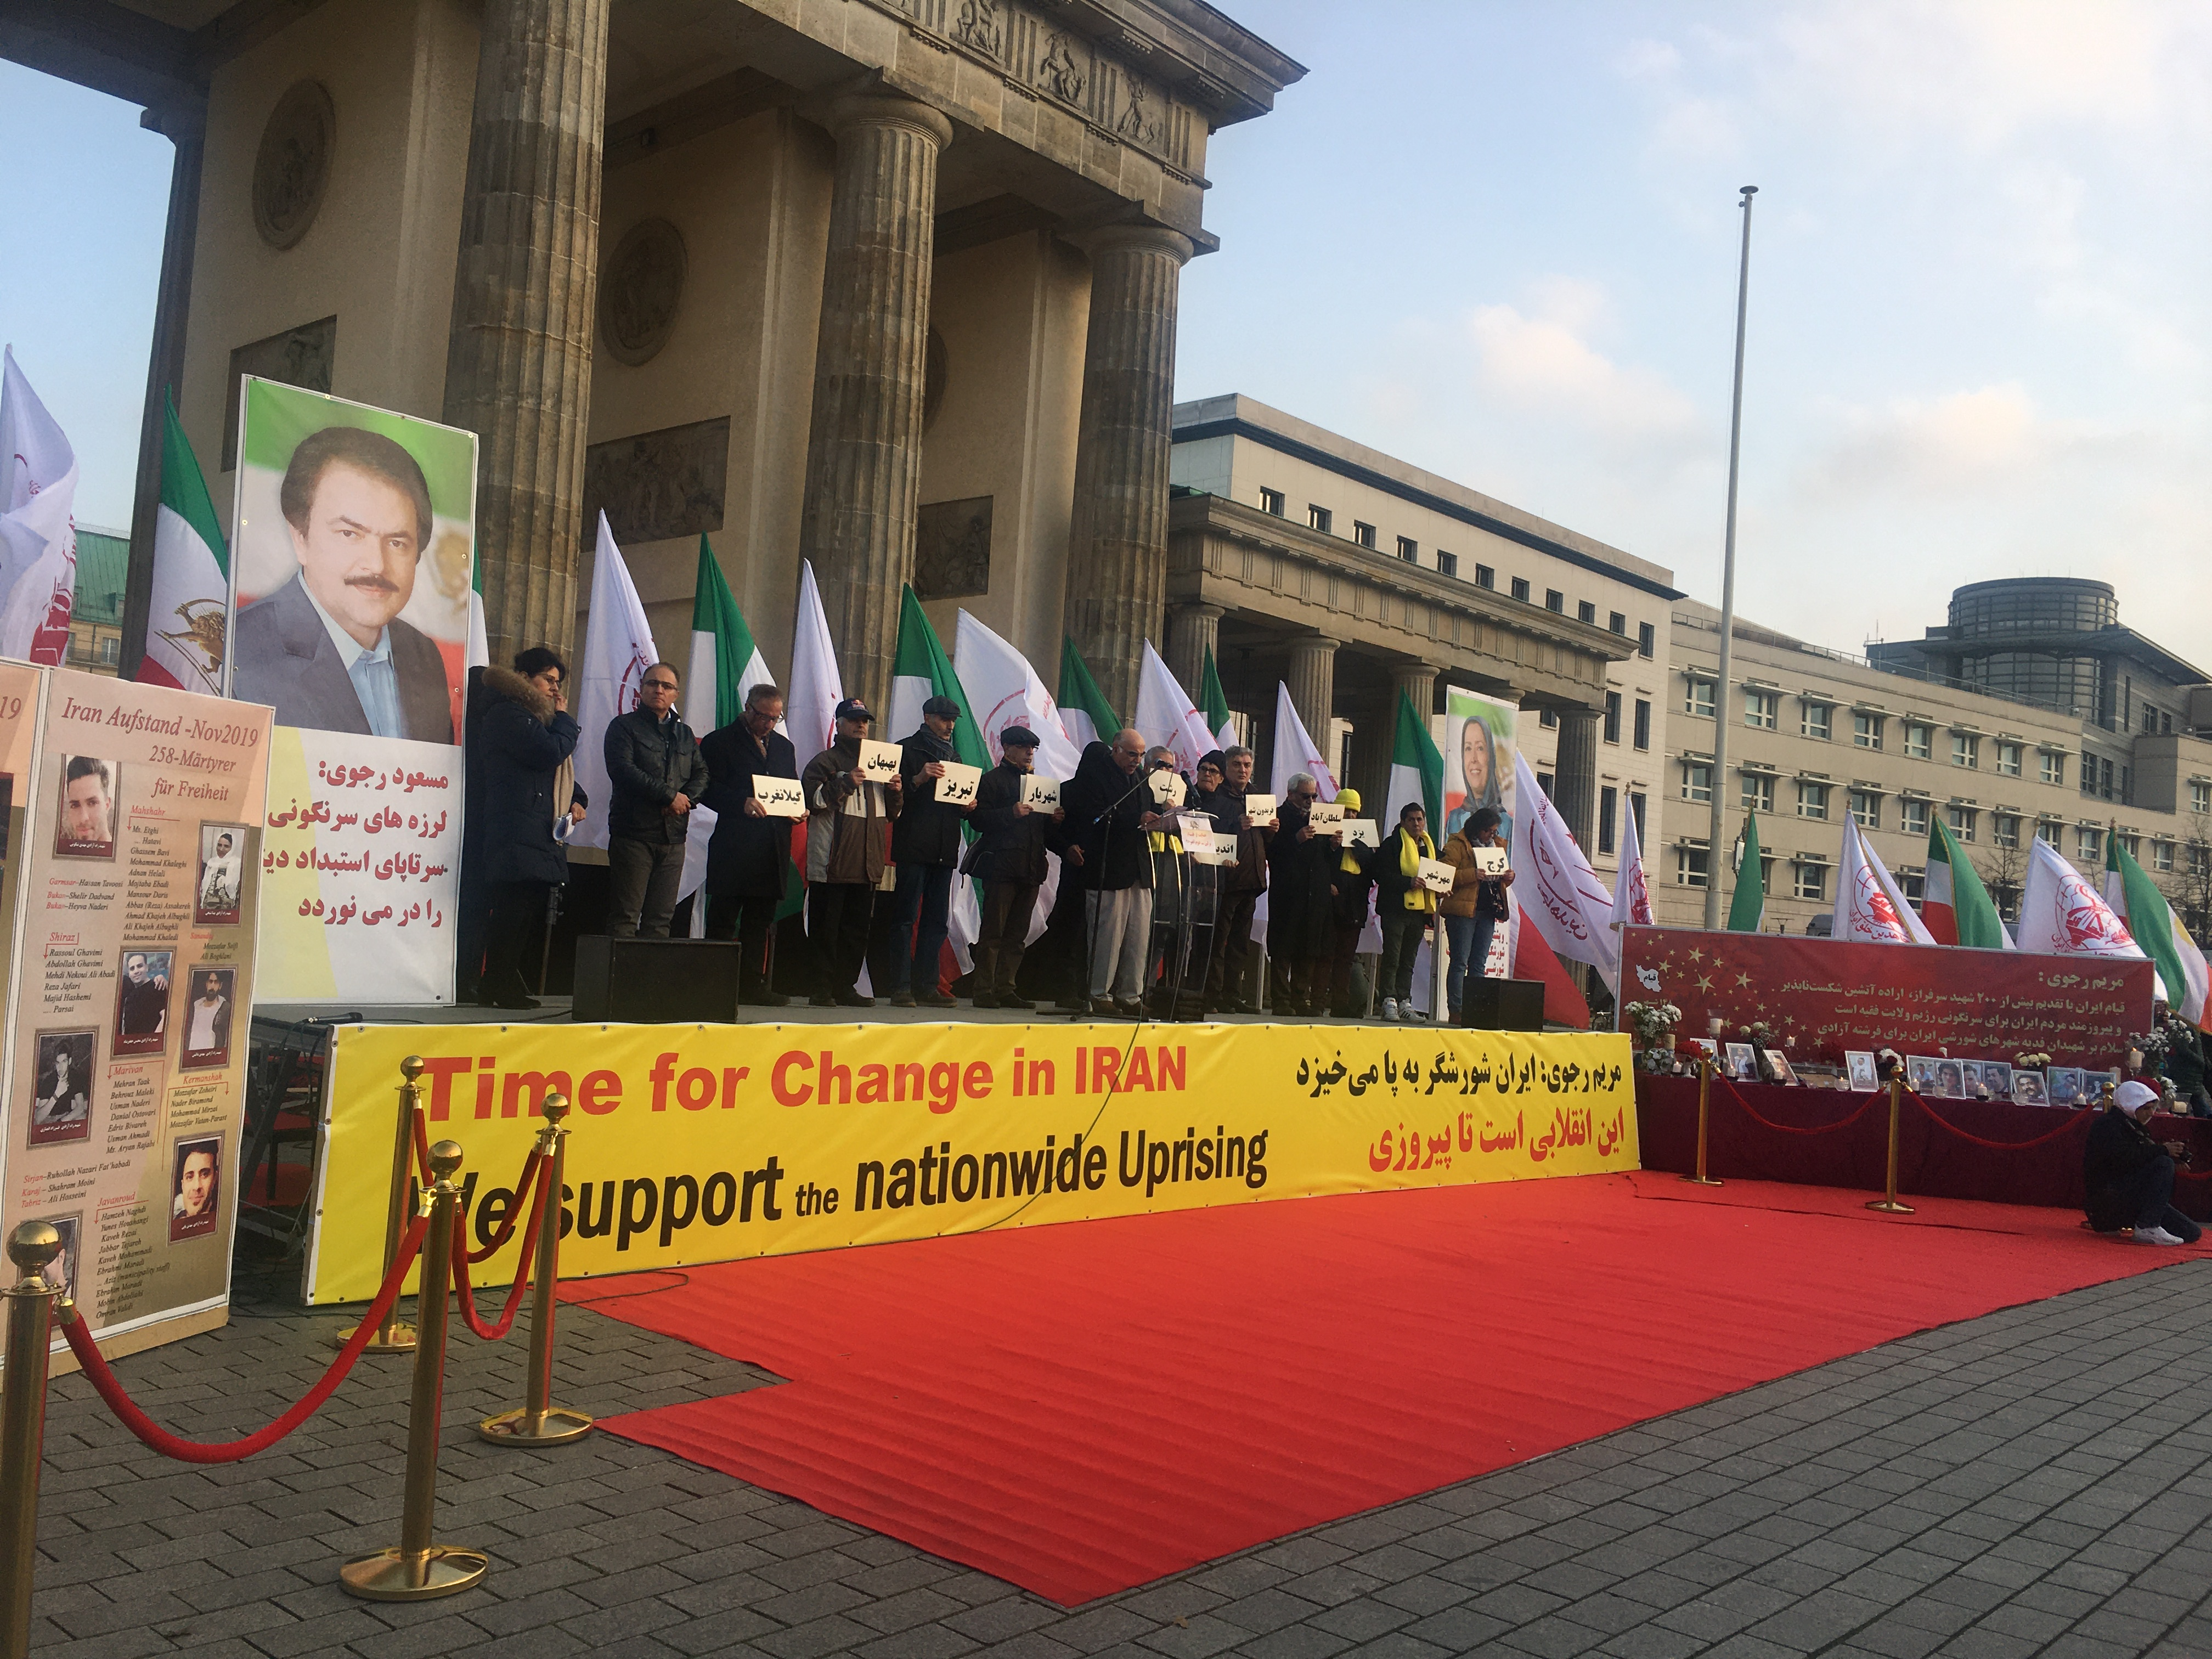 MEK rally in Berlin in solidarity with Iran Protests - November 23, 2019